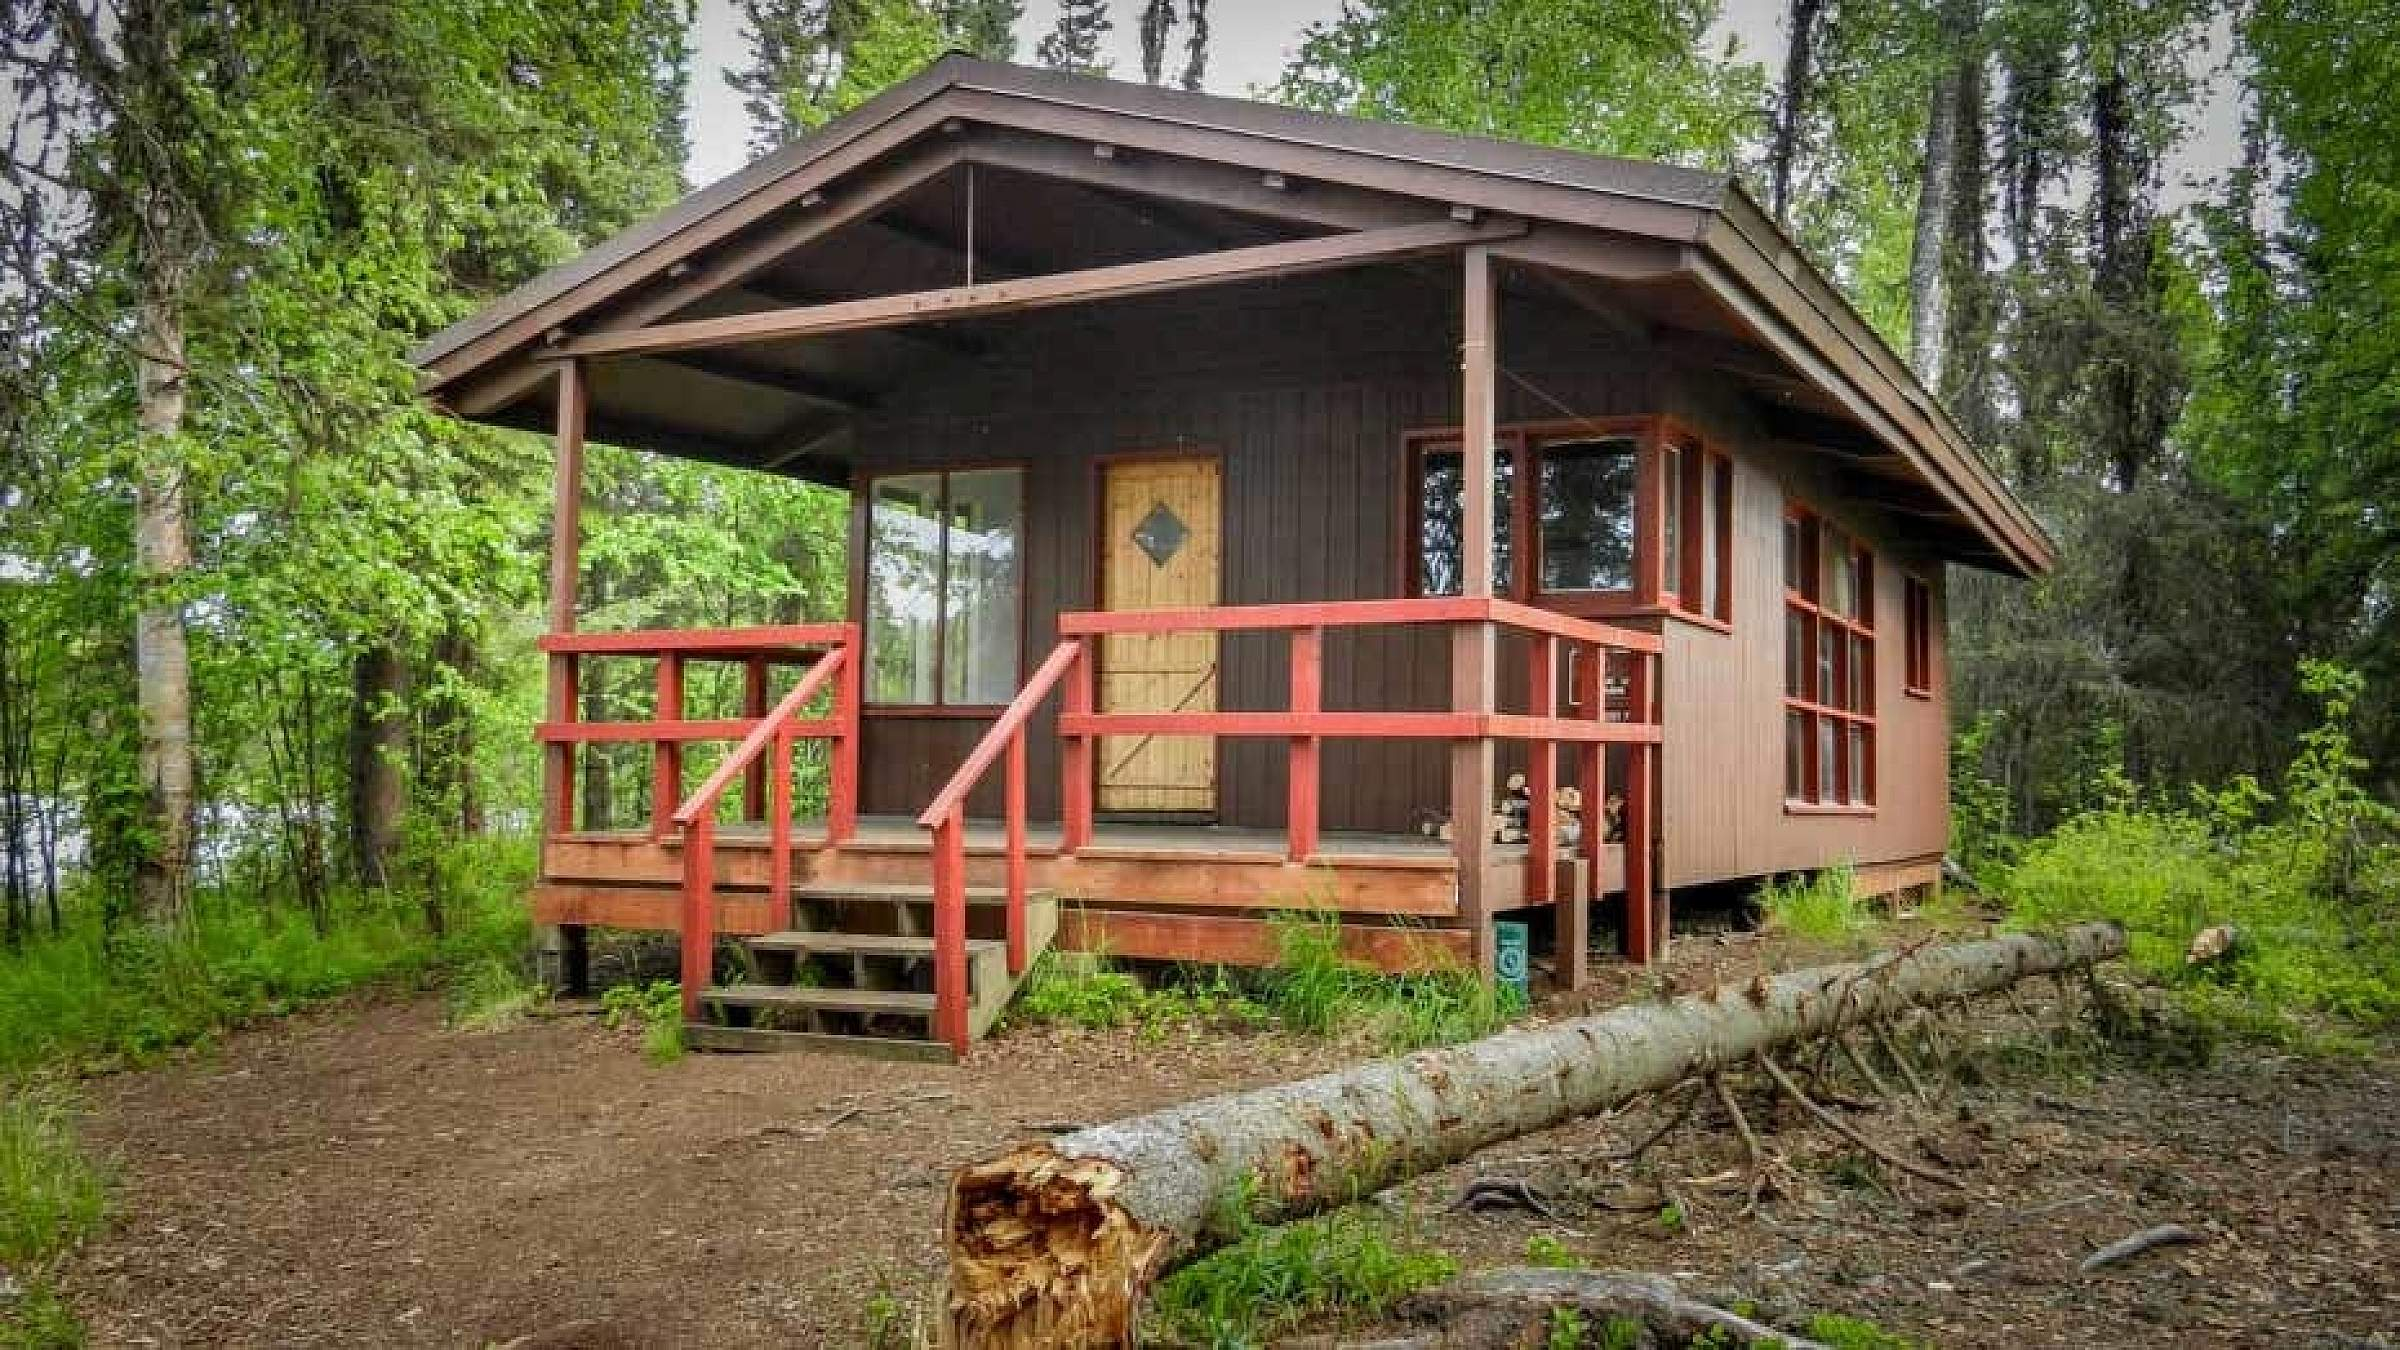 Red Shirt Lake Cabin is a 20-by-24 well-maintained cabin with sleeping space for up to 7